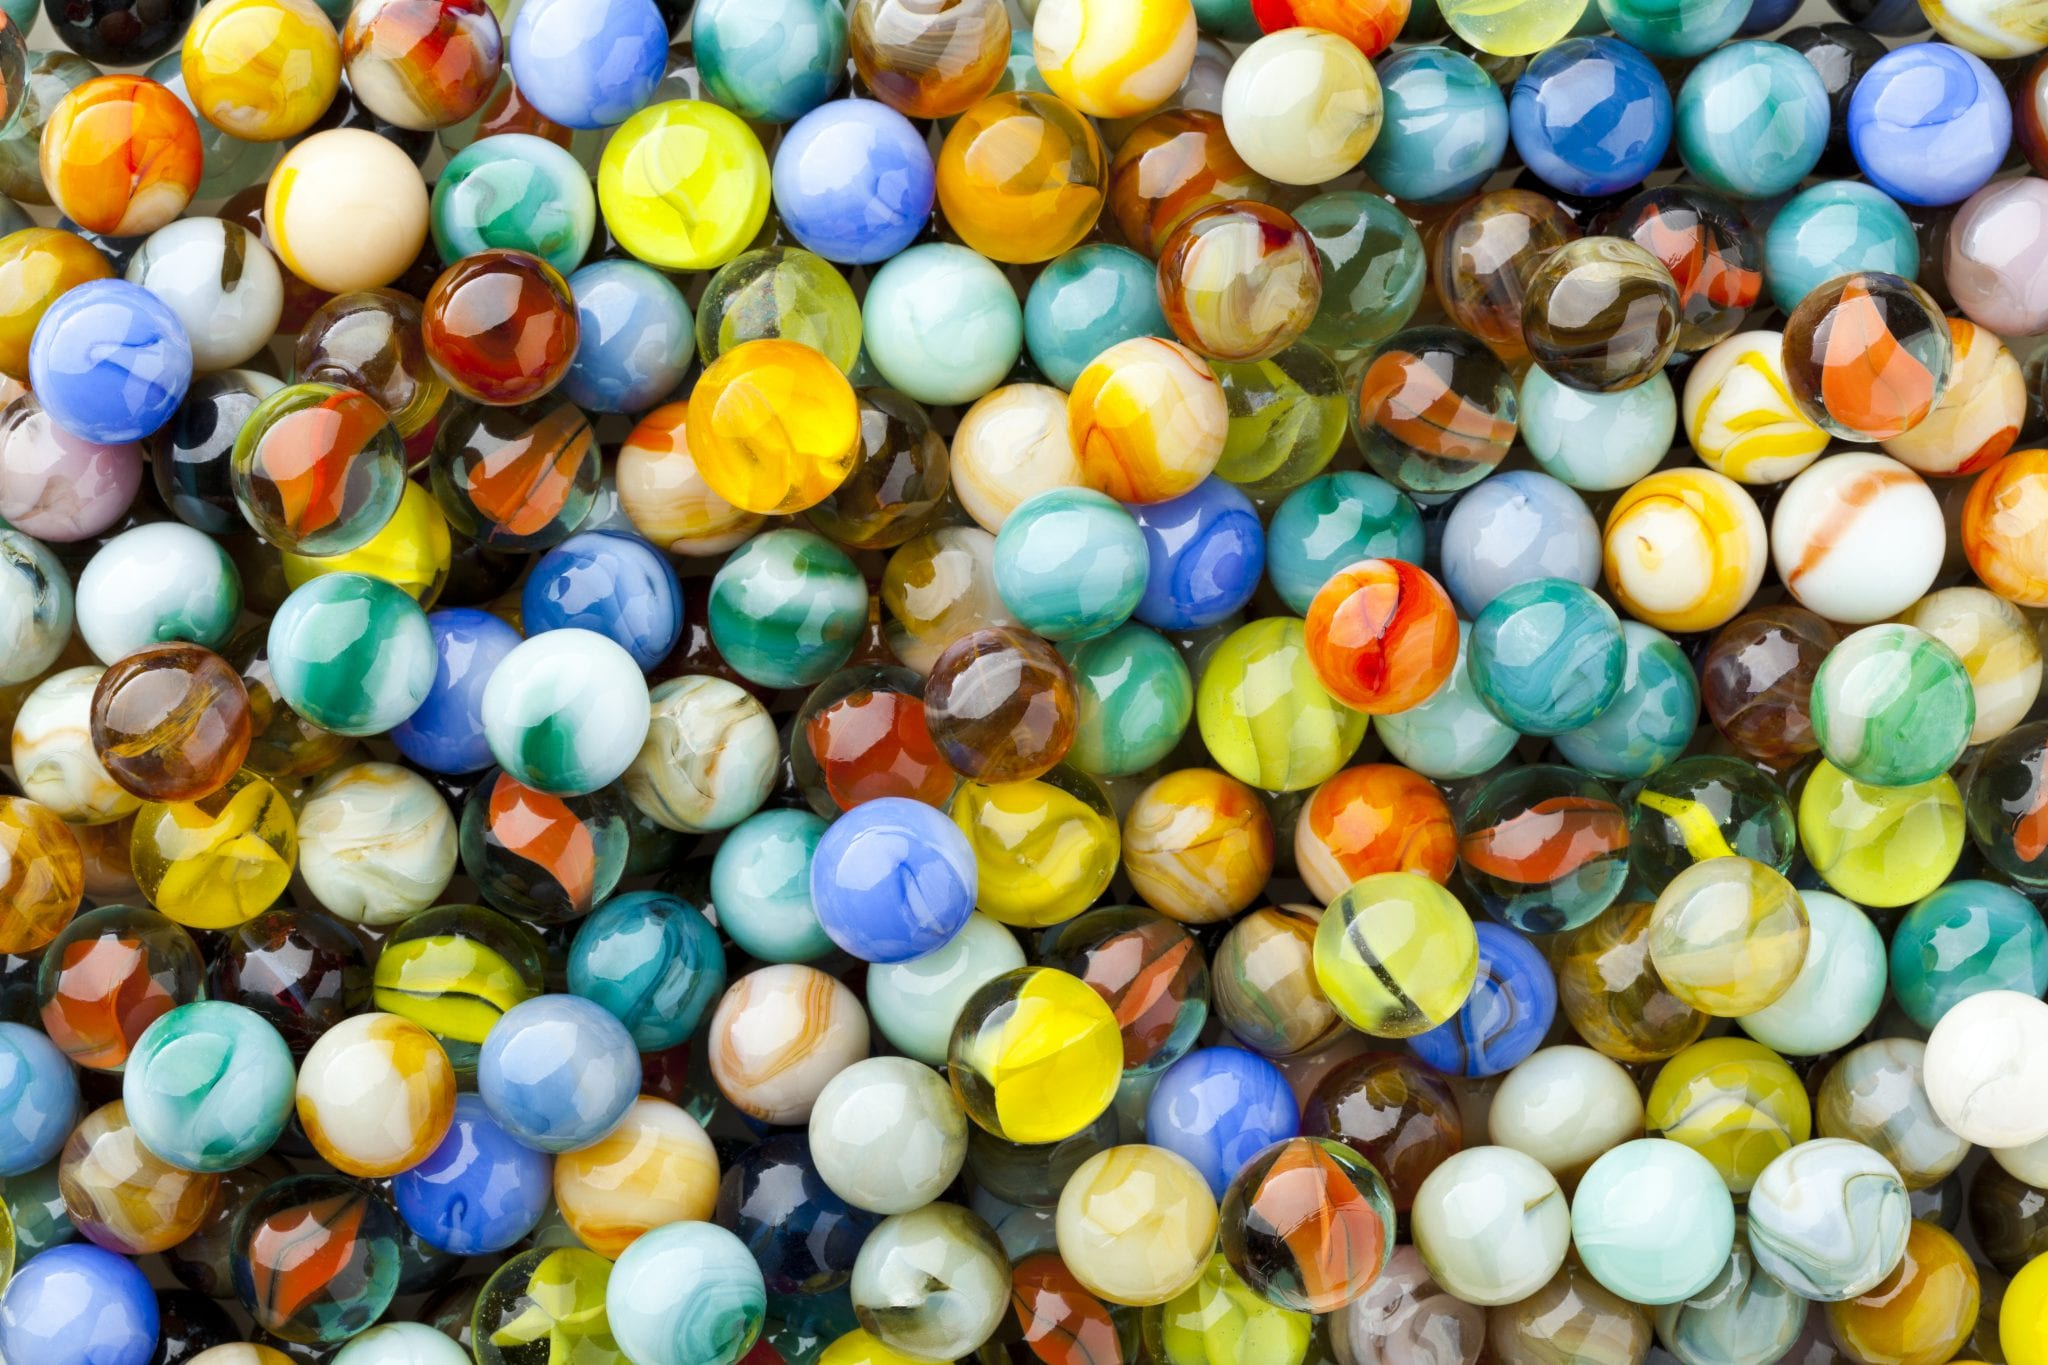 We've found our marbles